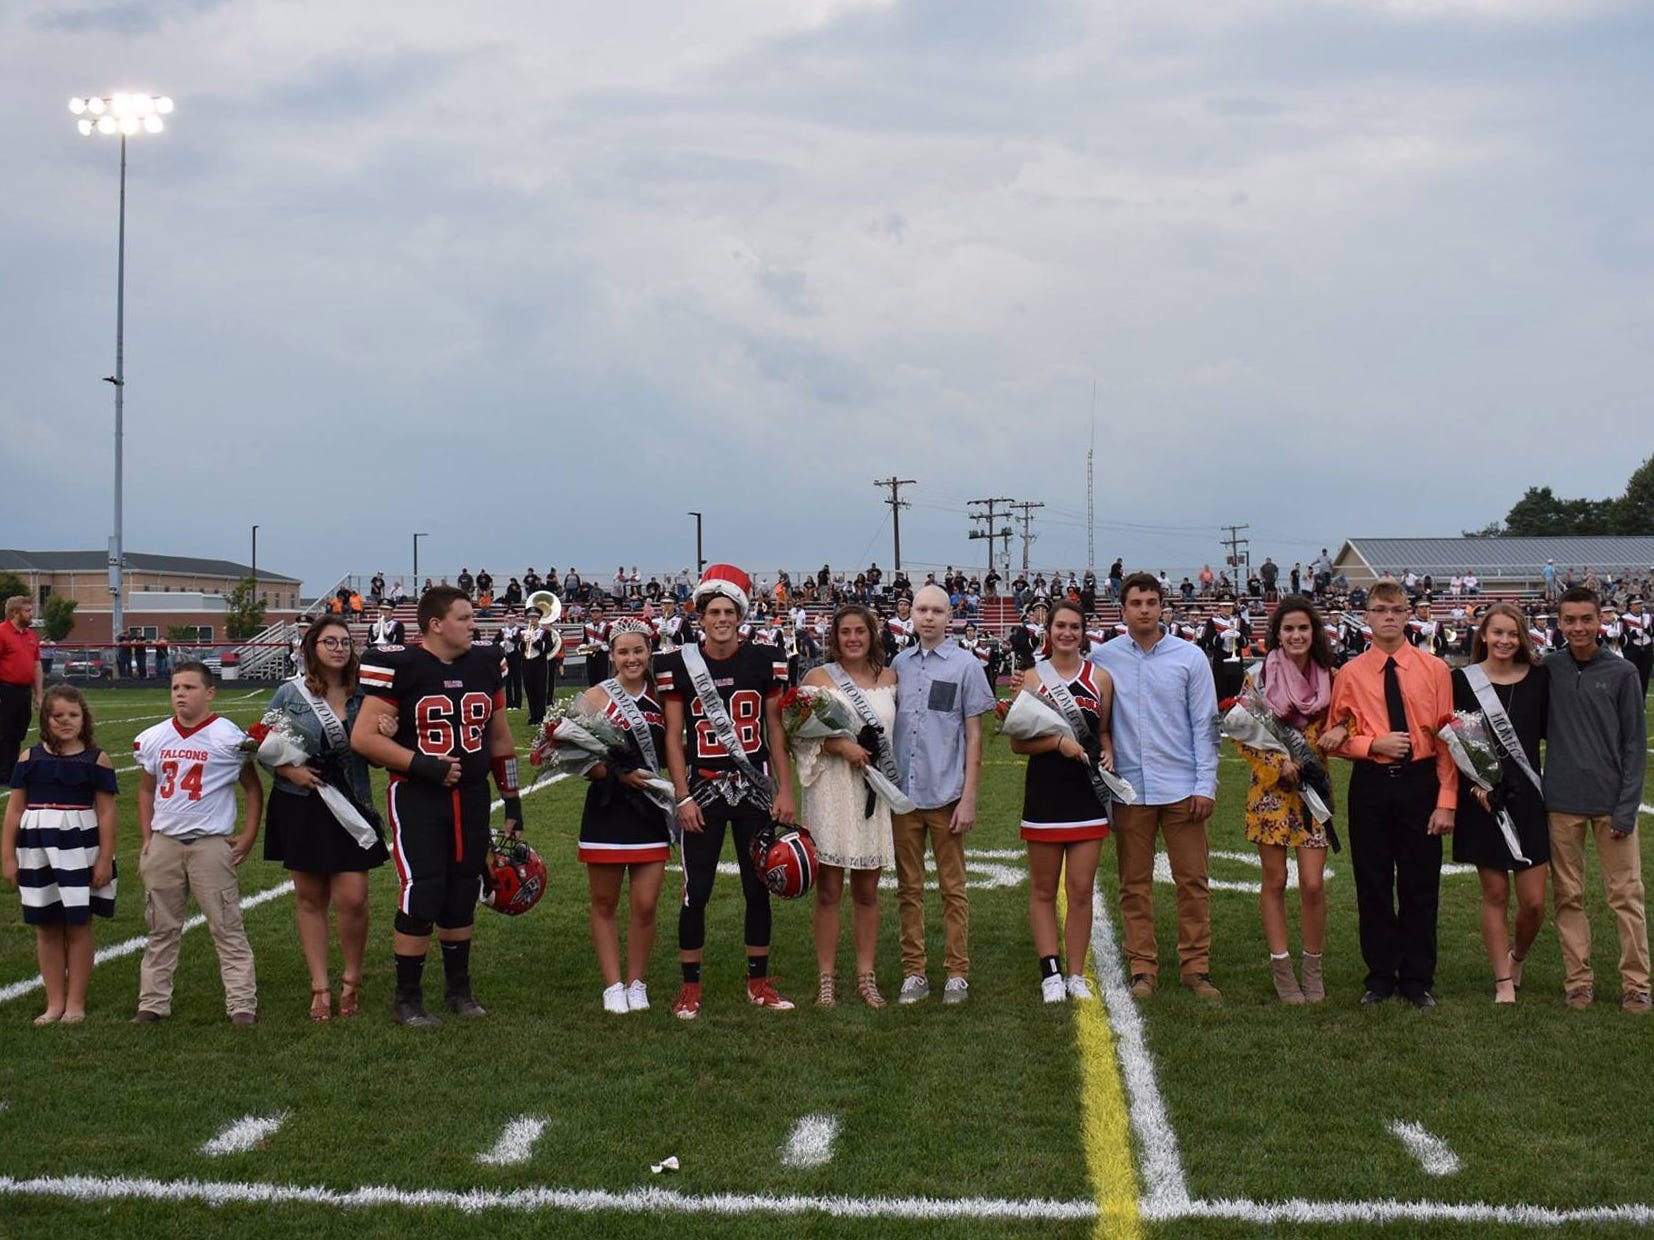 Fairfield Union's 2018 fall homecoming king and queen were crowned Firday night, Sept. 28, in Rushville. Pictured are (left to right): Flower girl Kendyl Wardand, crown bearer Mason Gee,  seniors Madison Dawson and Justin Cordle, Queen Marie Gornall, King Cullen Dennis, seniors Hannah Burnside and Luke Demmel, juniors Amelia Stansberry and Justin Barnhart, sophomores Brooklyn DeFazio and Matthew Qualls and freshman Caroline Brown and Andrew Hurst.